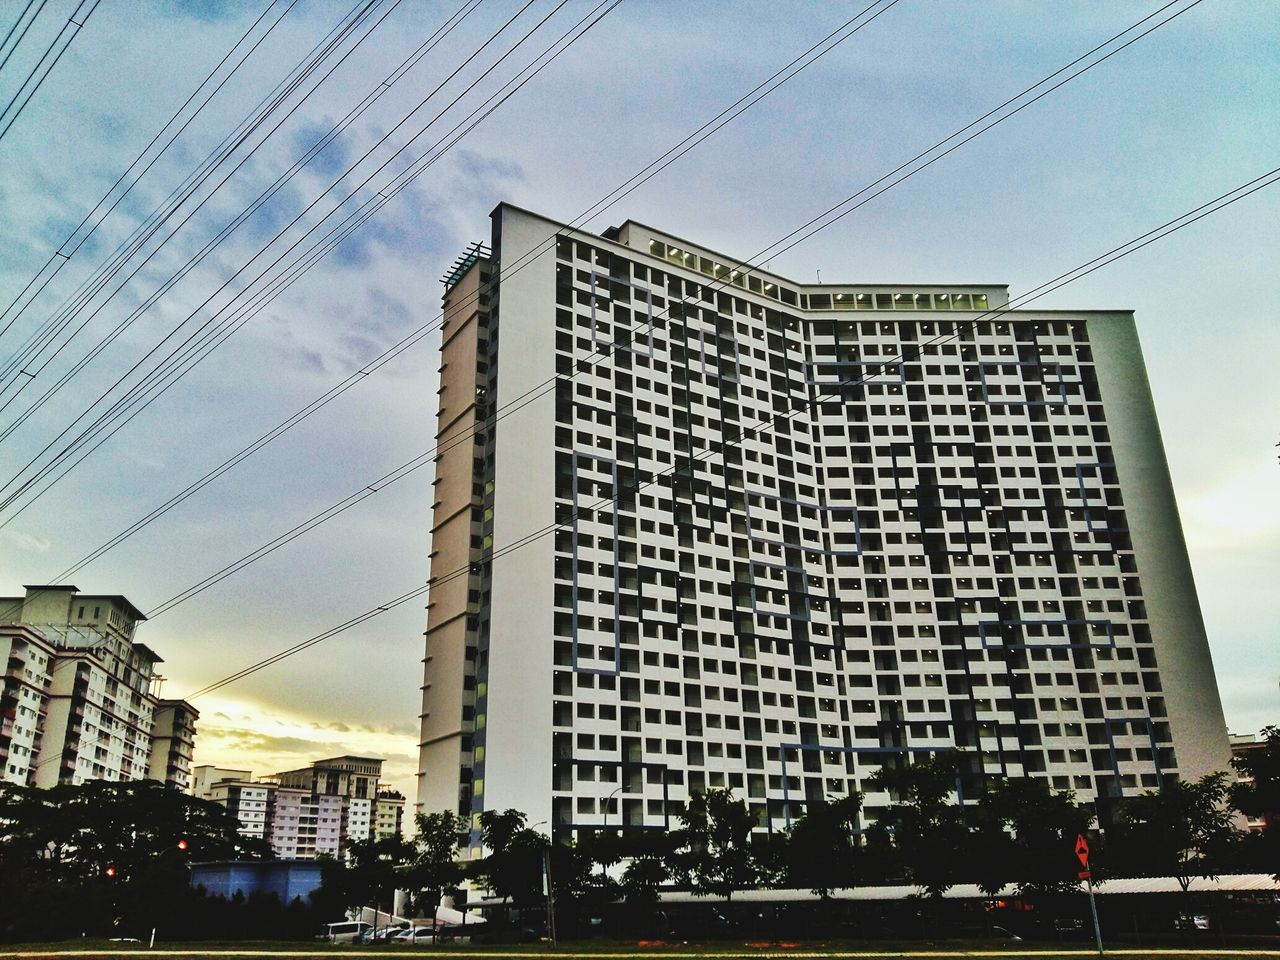 End of the day. Building Exterior Sky Outdoors No People Apartment Buildings Sunset And Clouds  Cables And Wires Neighborhood Kuala Lumpur Malaysia Scenery Samsunga5